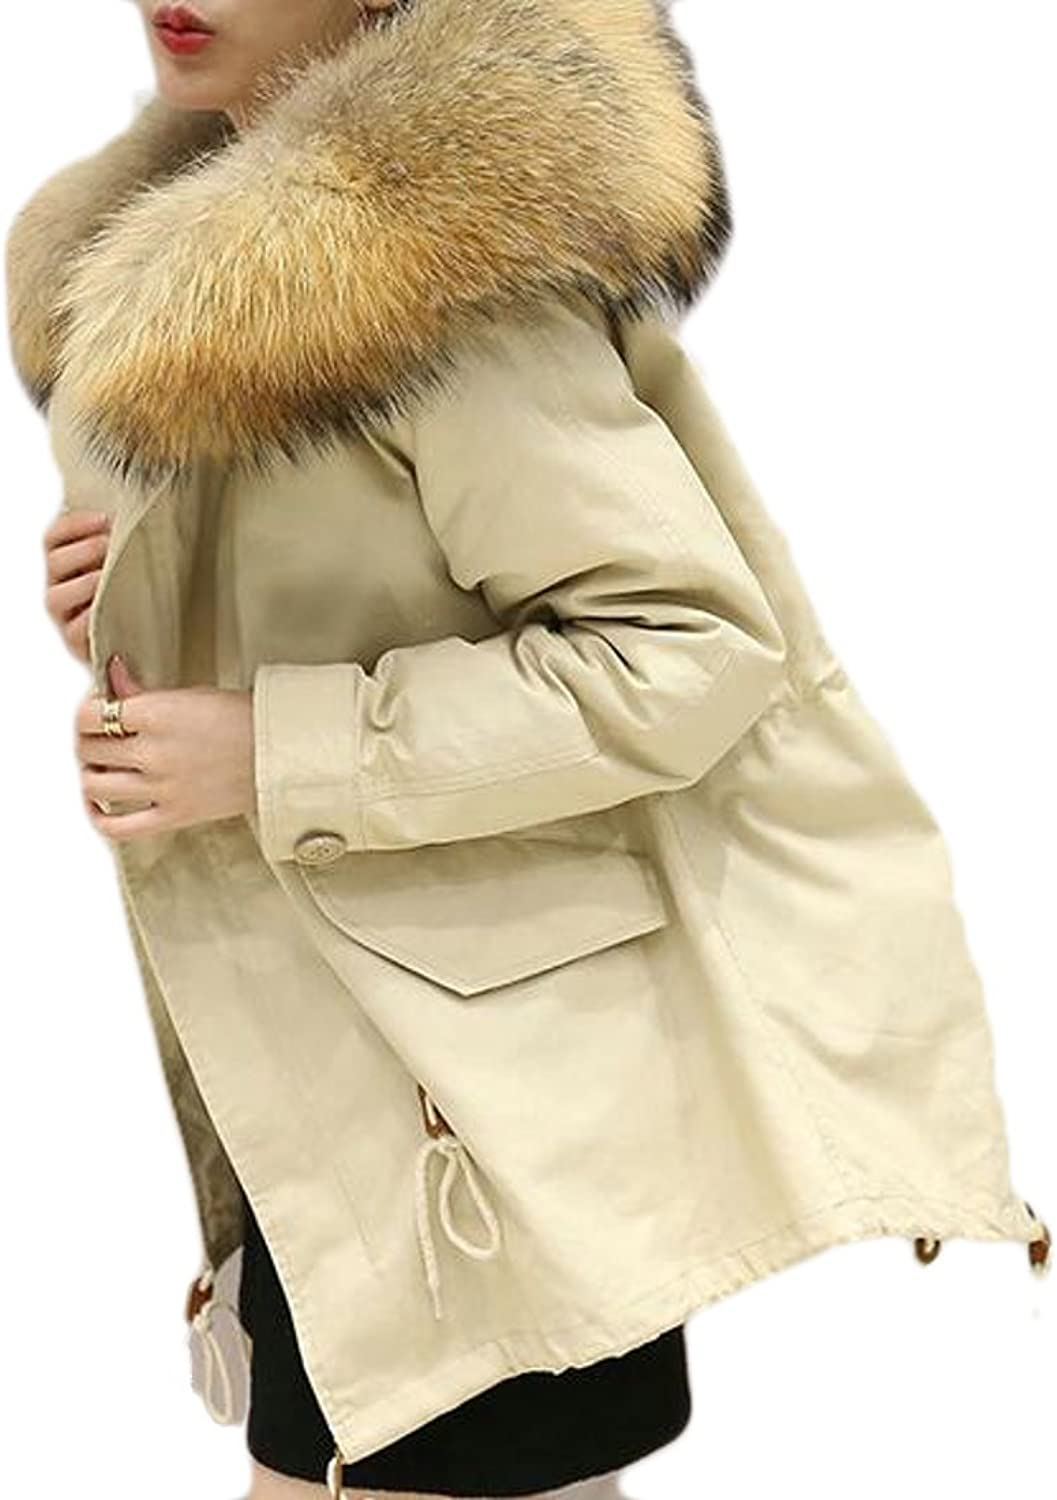 HTOOHTOOH Women's Winter Faux Fur Hoodie Thick Warm CottonPadded Jacket